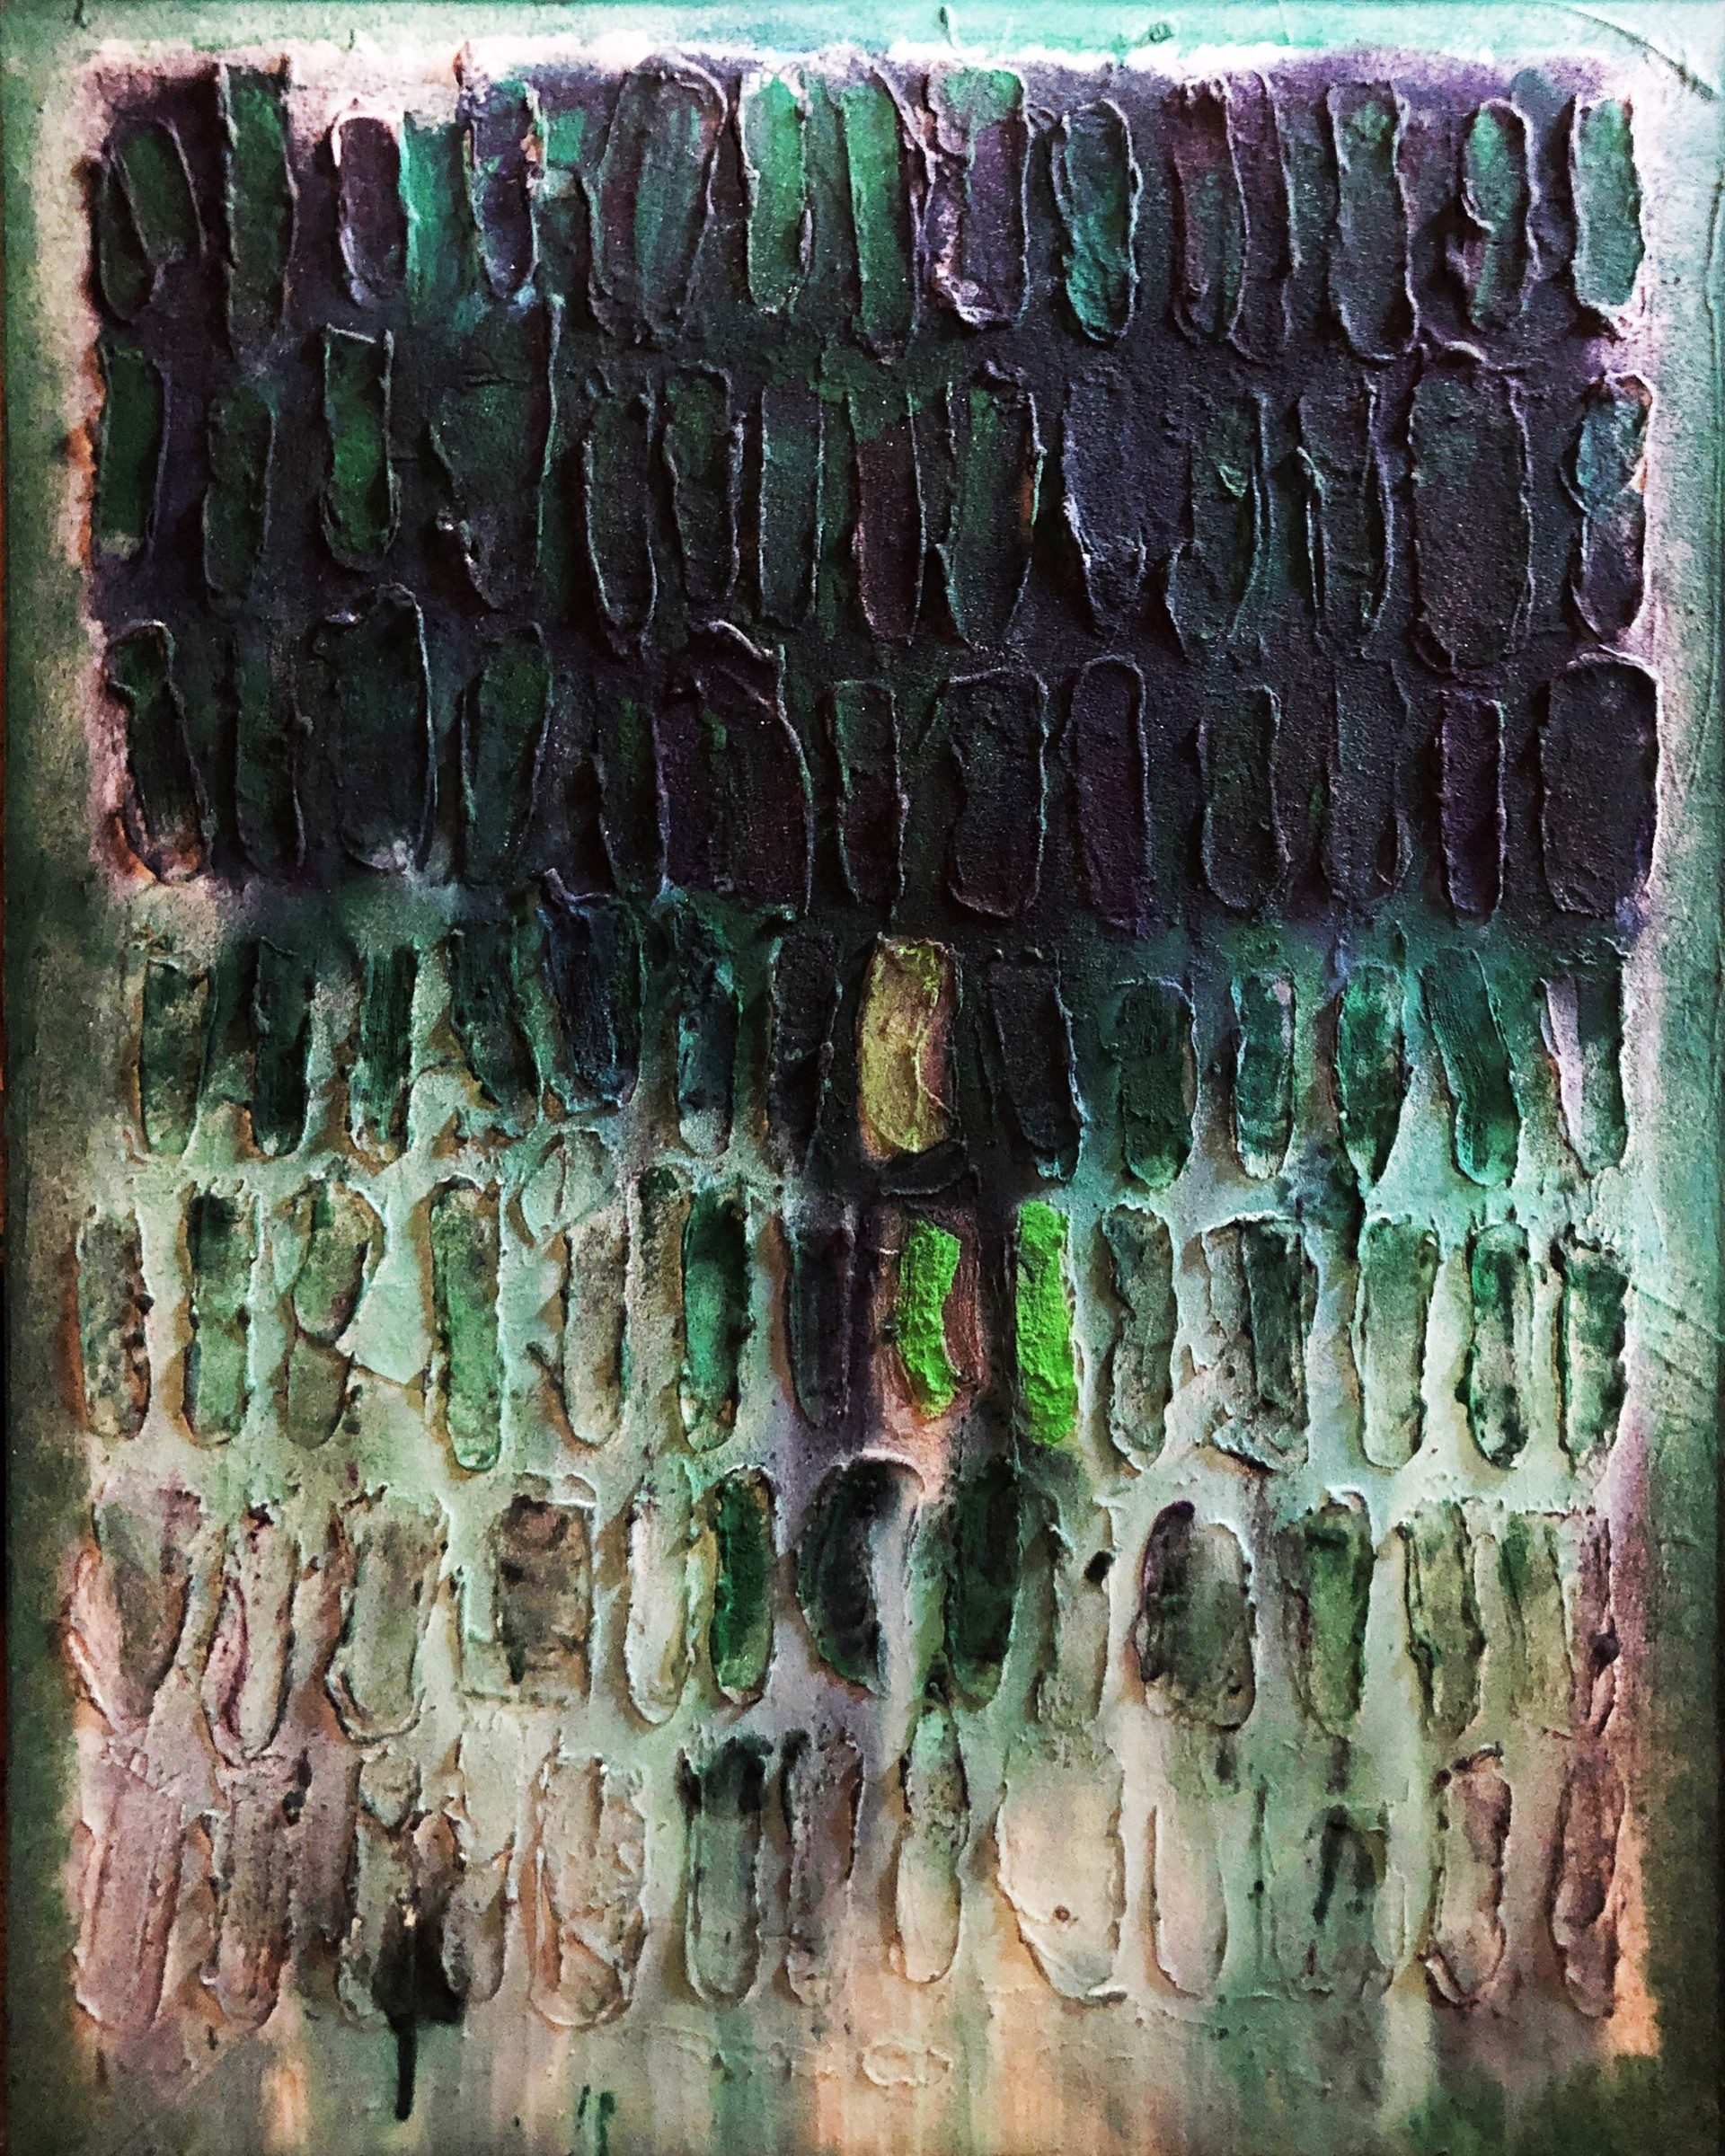 Abstract V by Dick Jemison